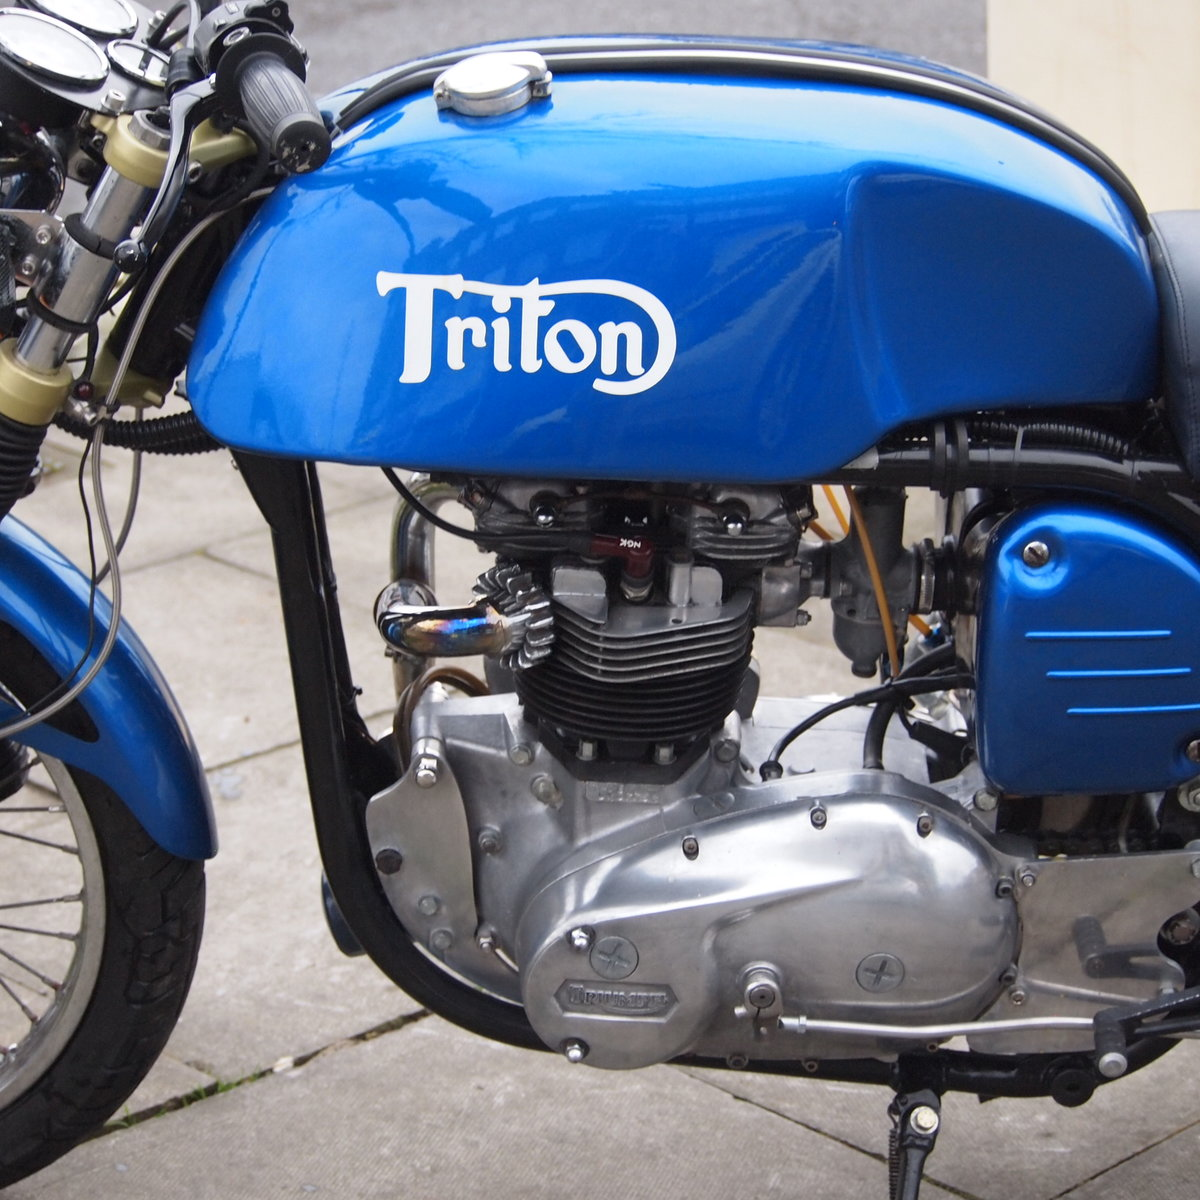 1965 Triumph Triton Featherbed Framed, RESERVED FOR NORMAN. SOLD (picture 3 of 6)